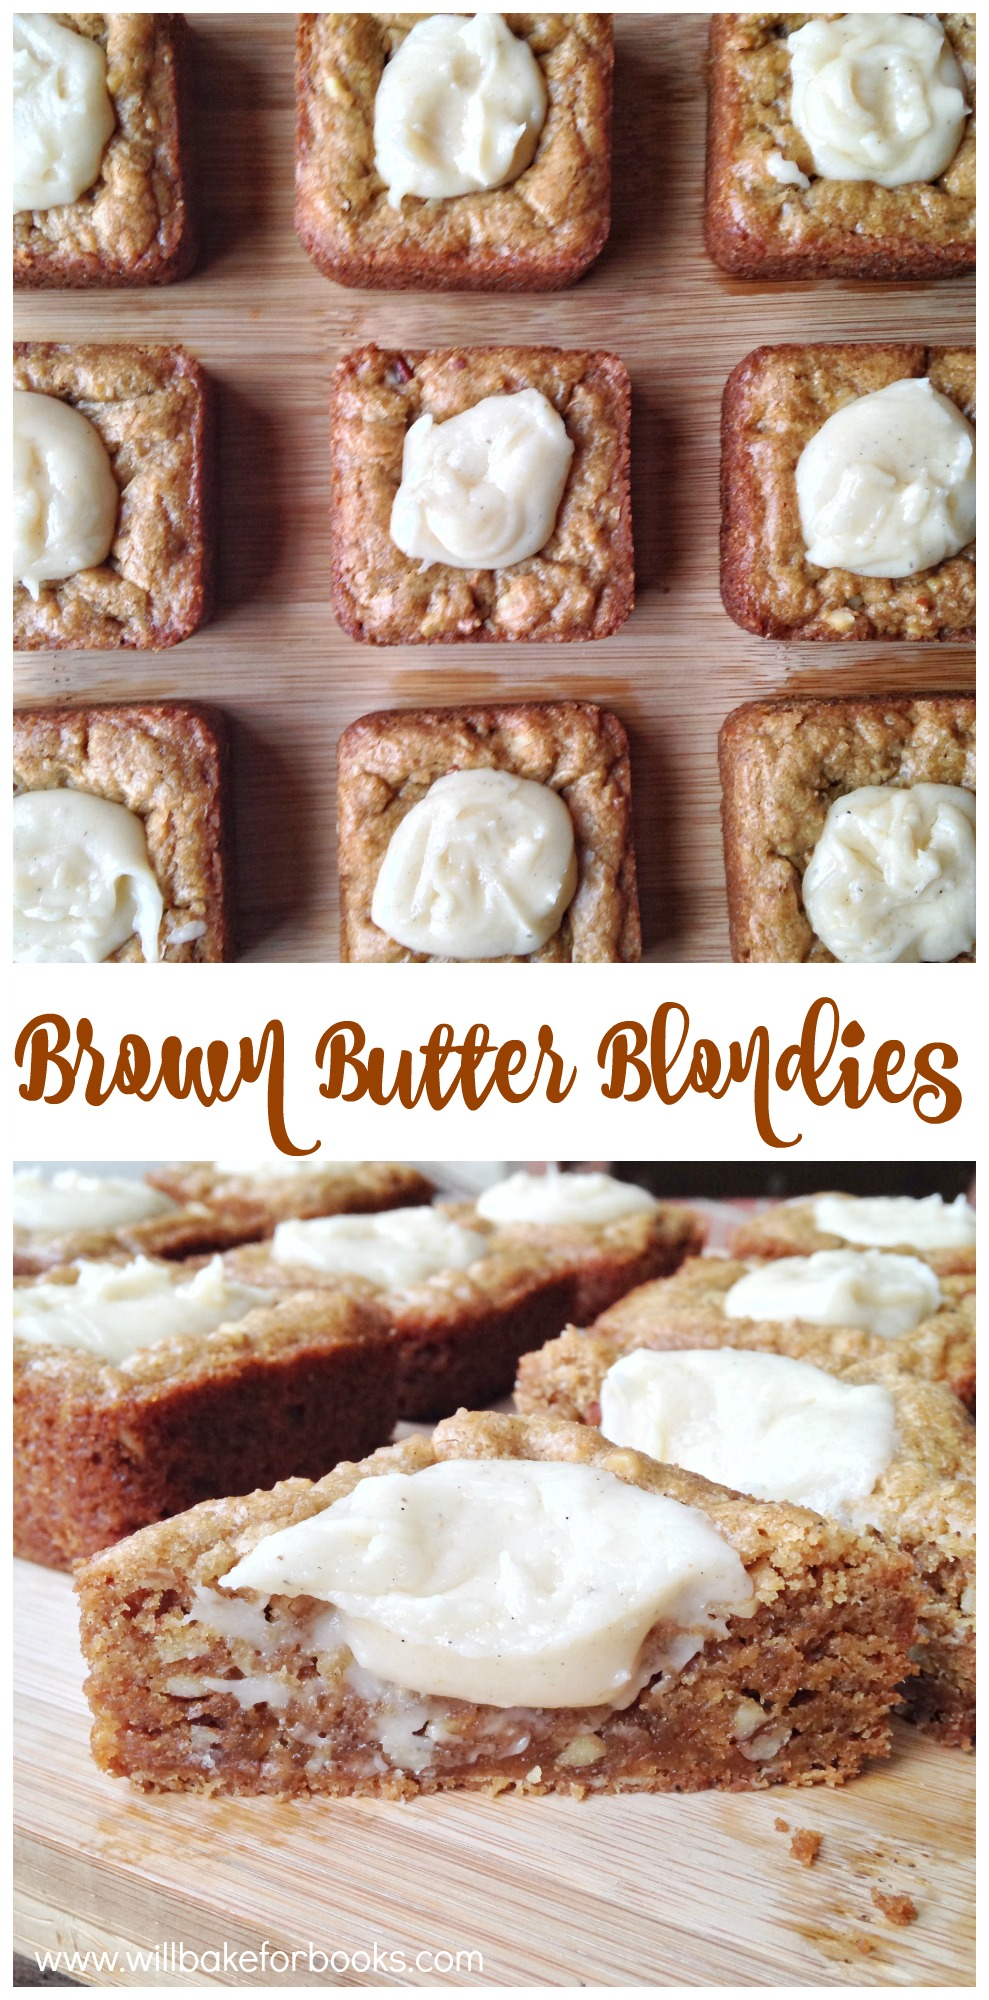 Brown Butter Blondies with Brown Butter Frosting on willbakeforbooks.com